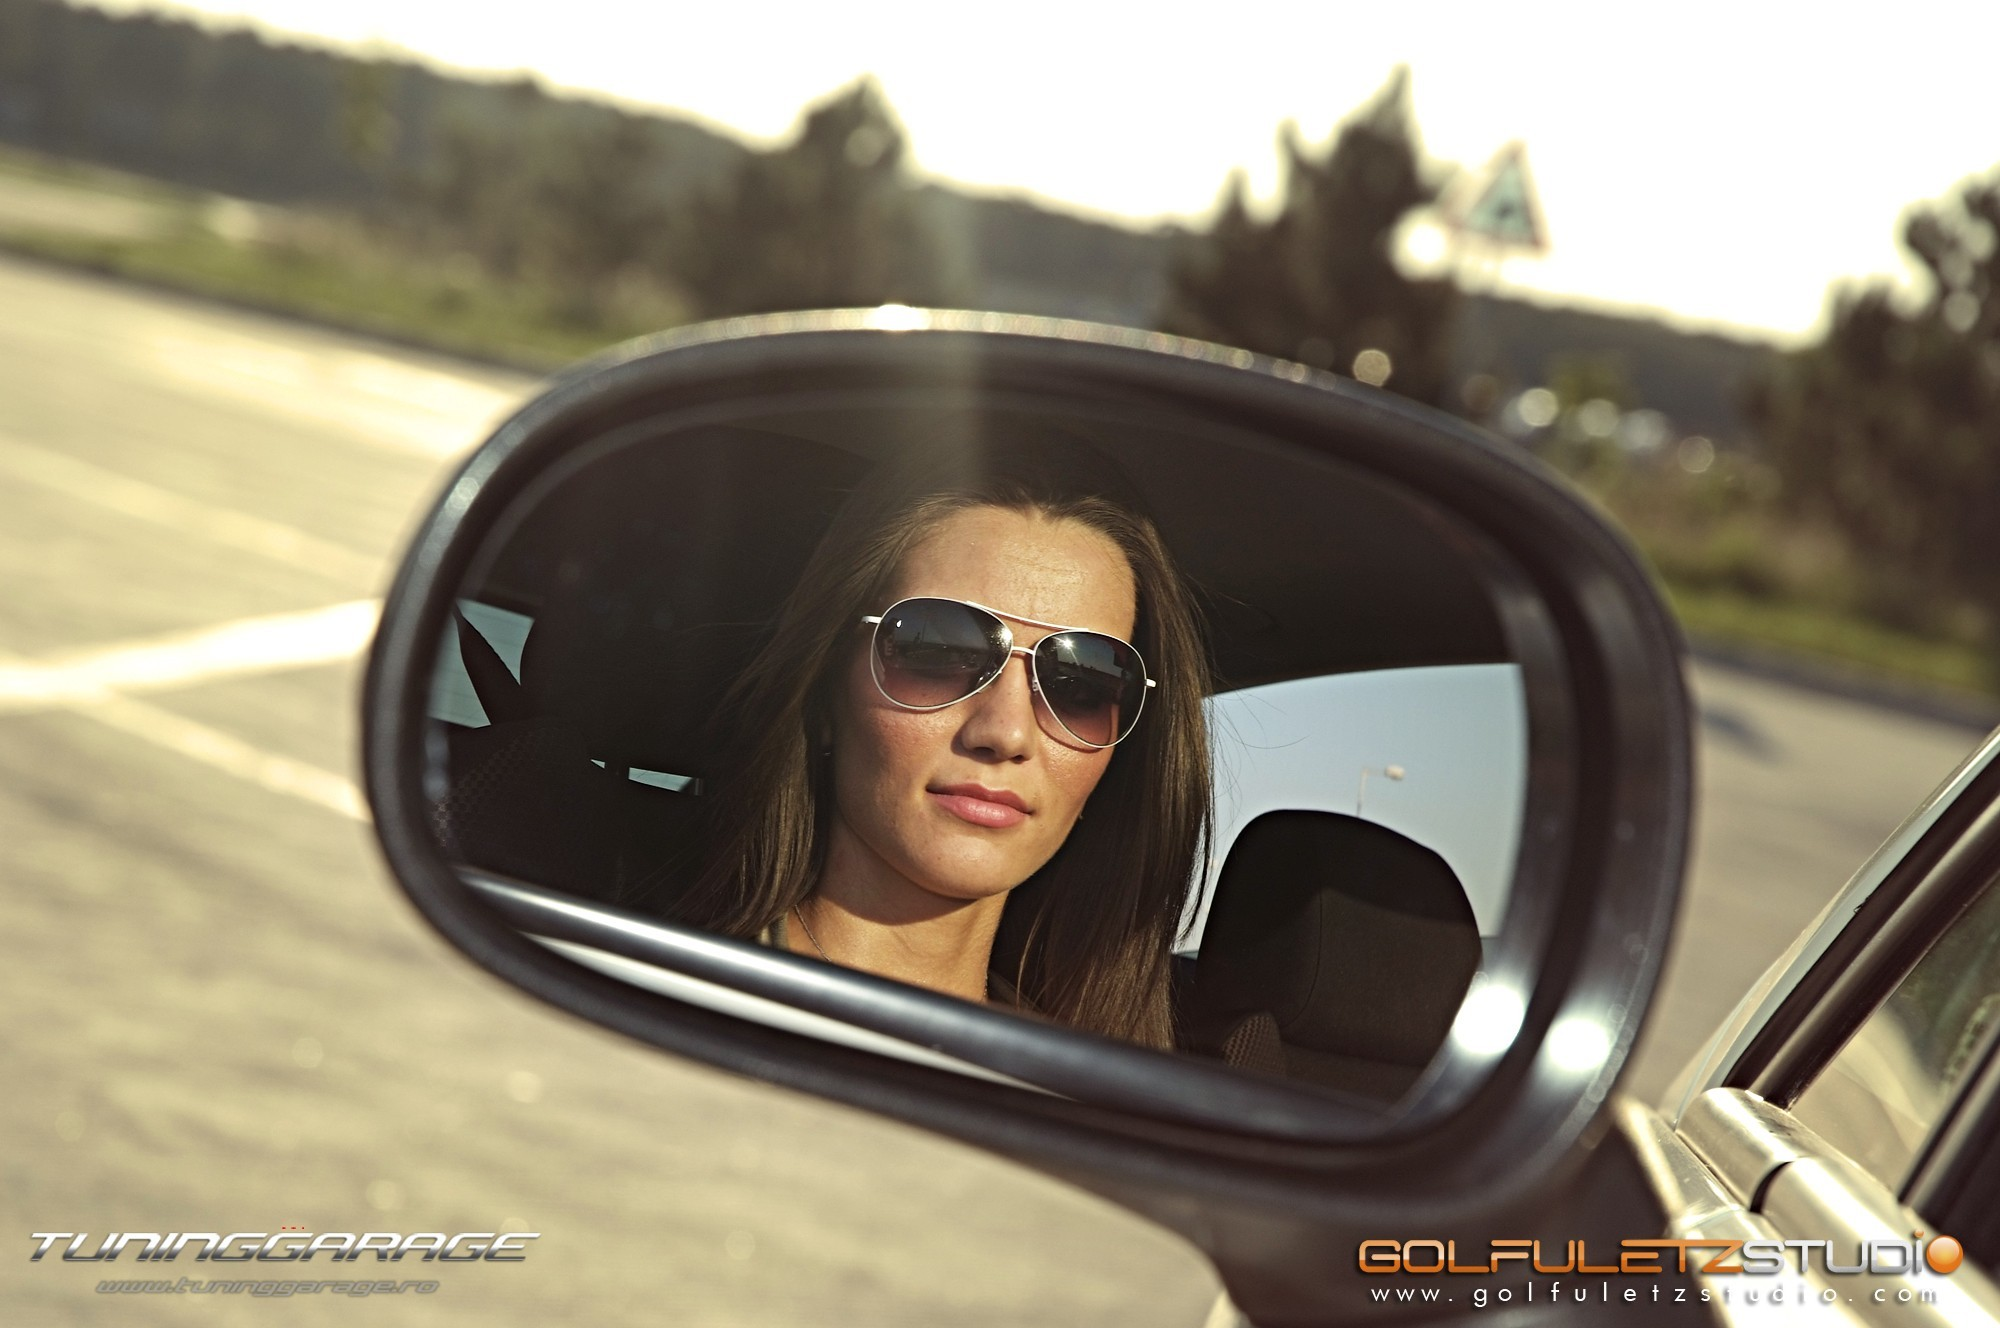 woman cars sunglasses Seat HD Wallpaper